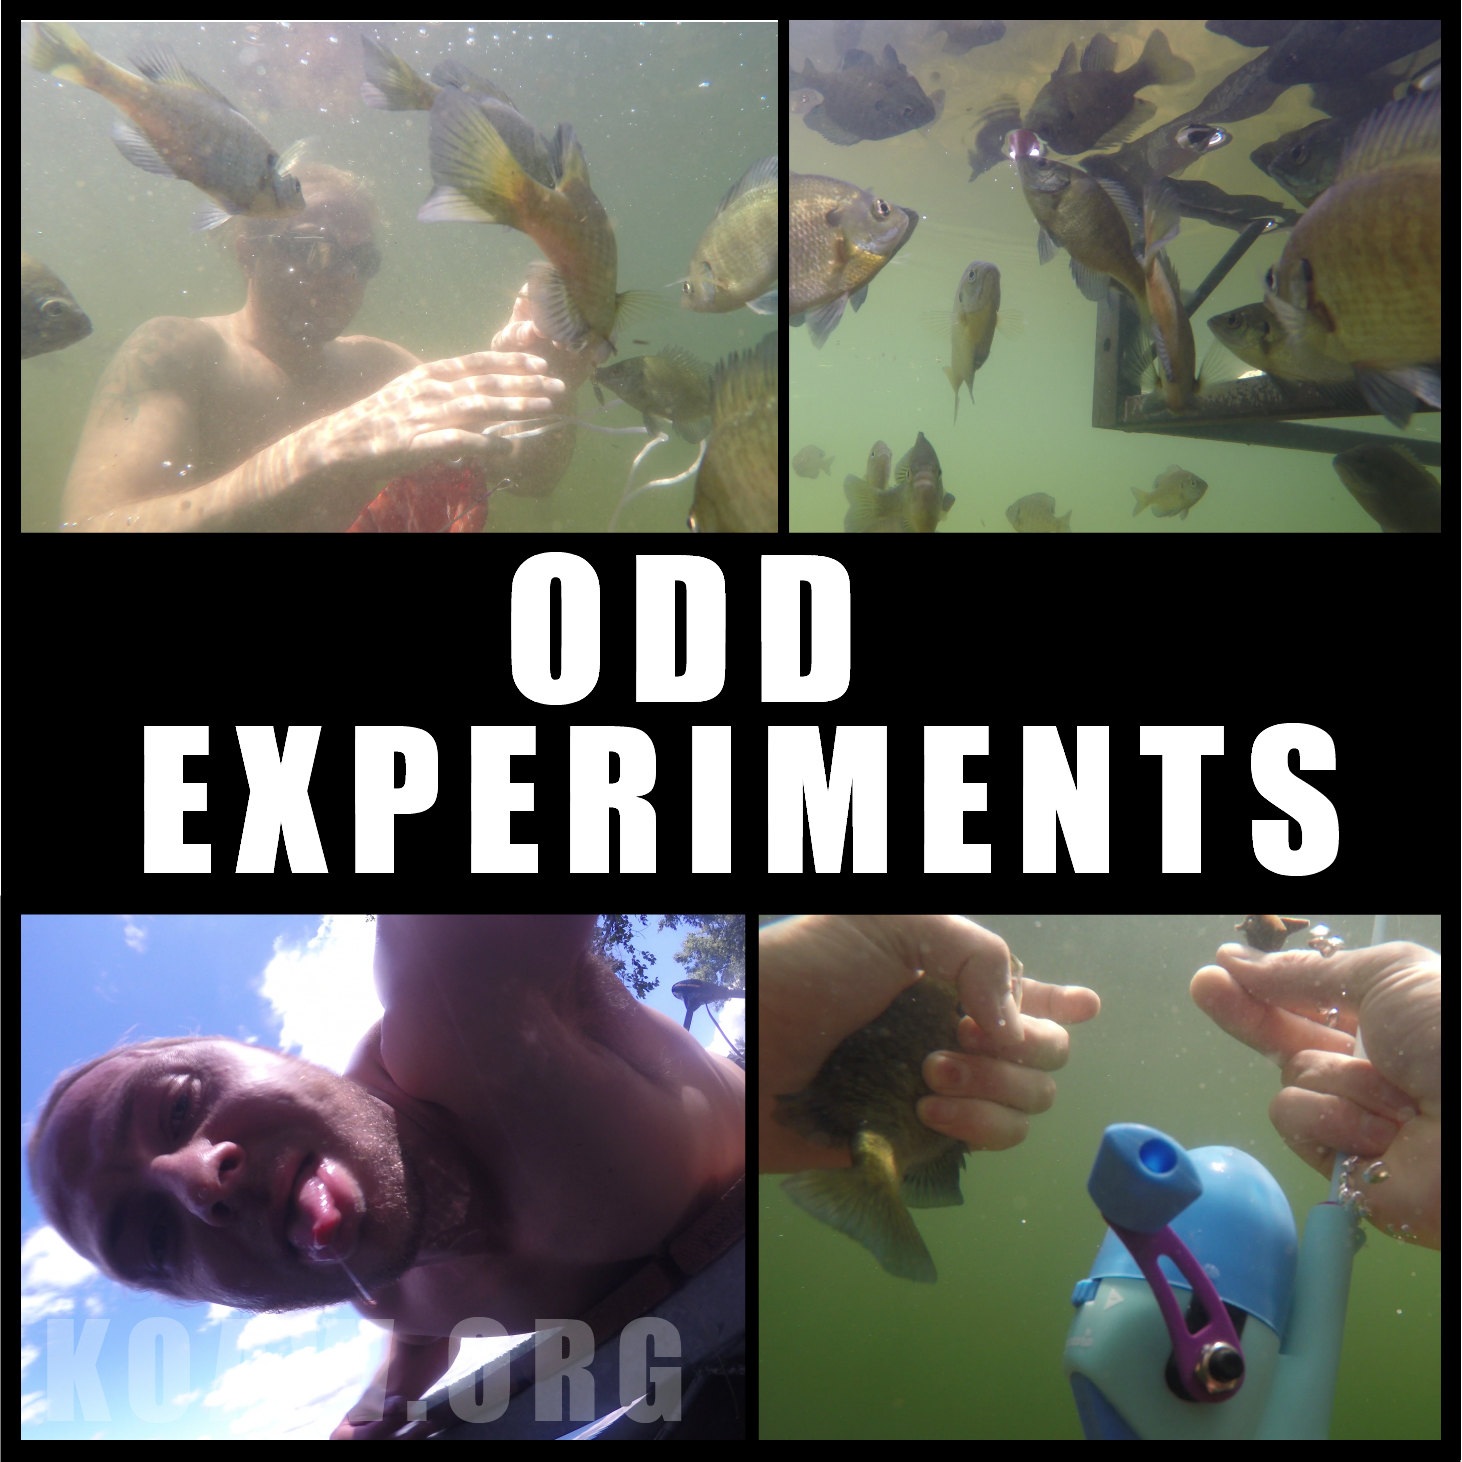 experiments koaw org2.png